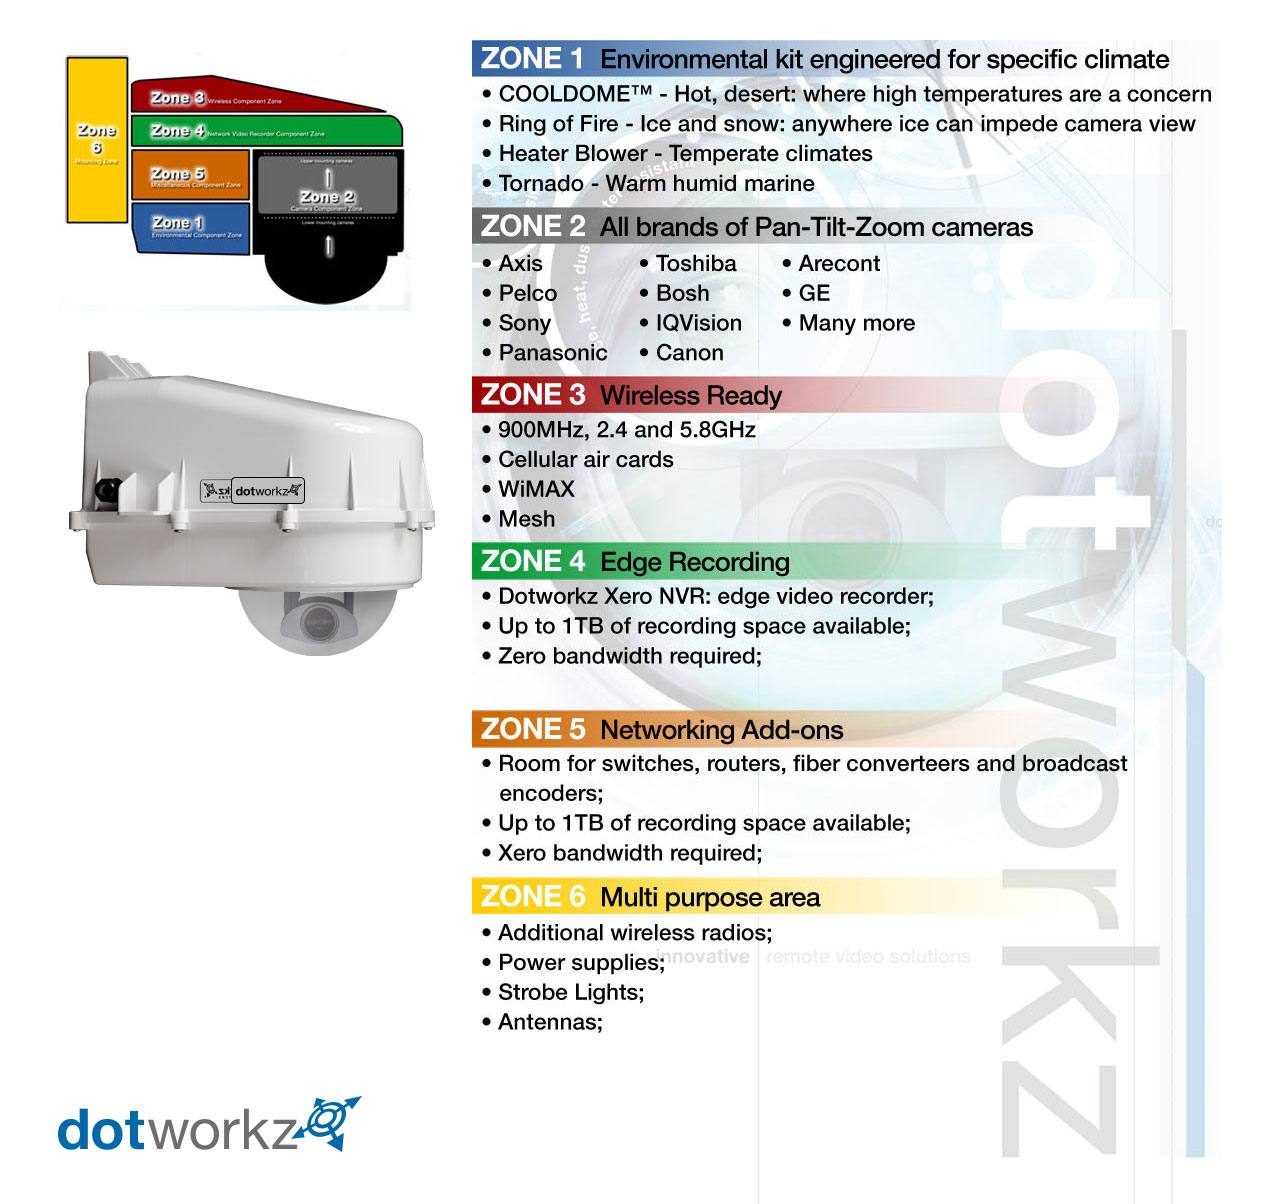 D series ip68 camera housing dotworkz d series zones thumbnail sciox Images